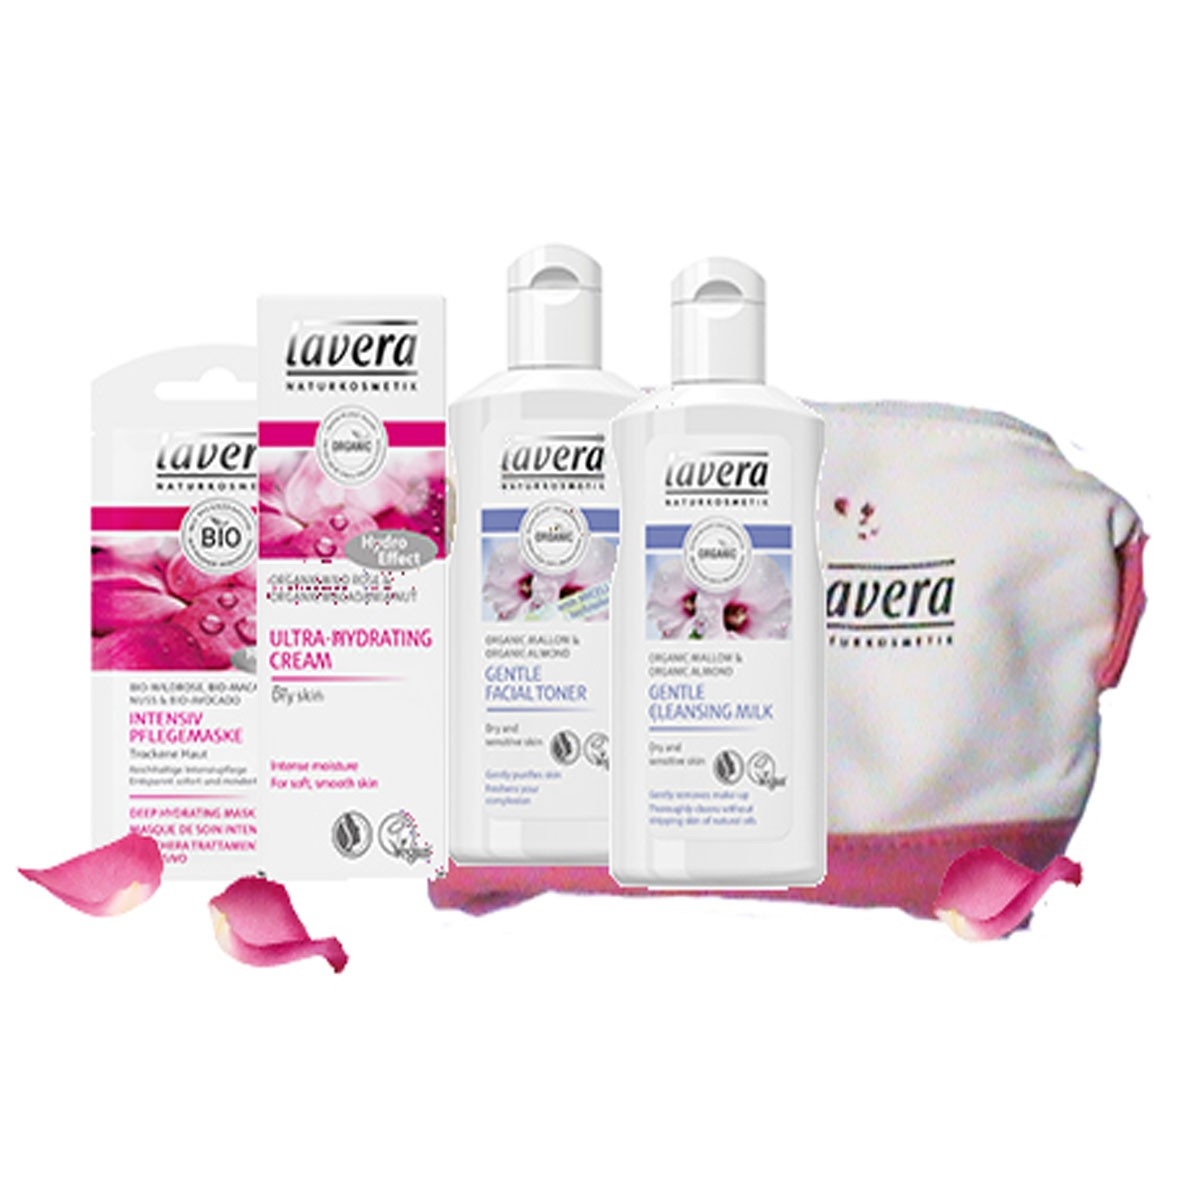 Lavera Regenerating s Set with Pouch